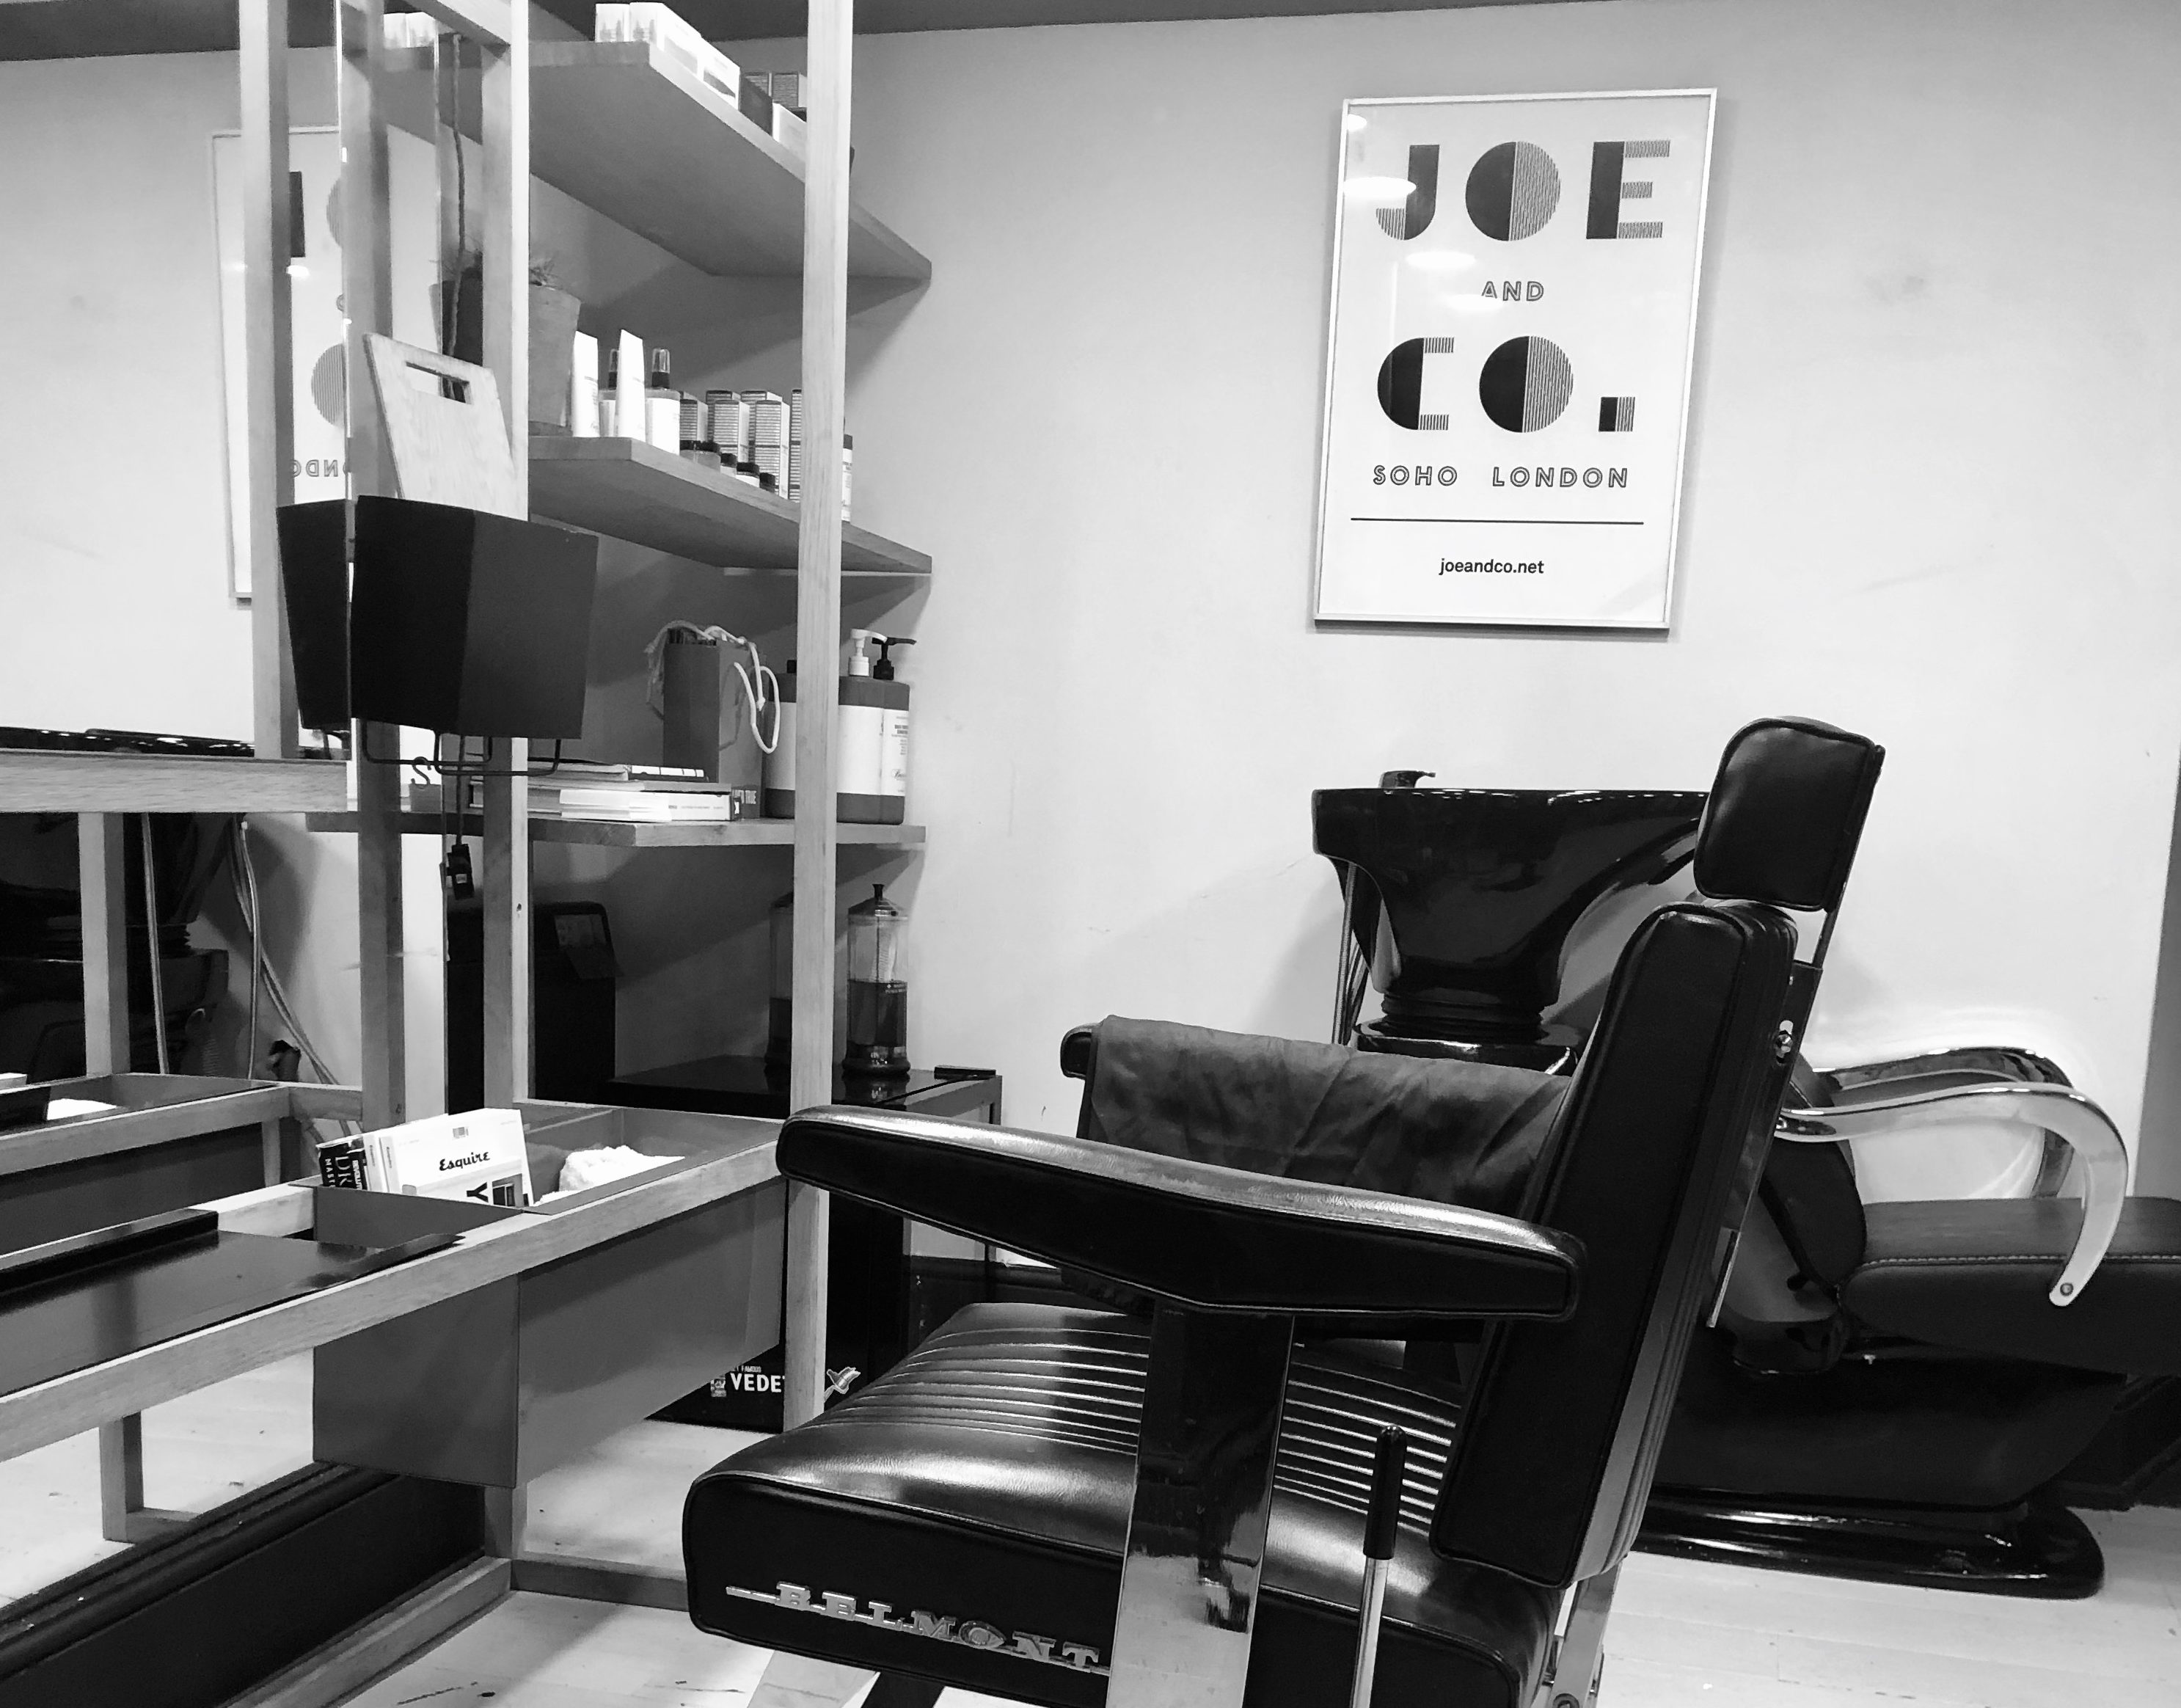 Joe and Co pop-up barbershop opens in Notting Hill